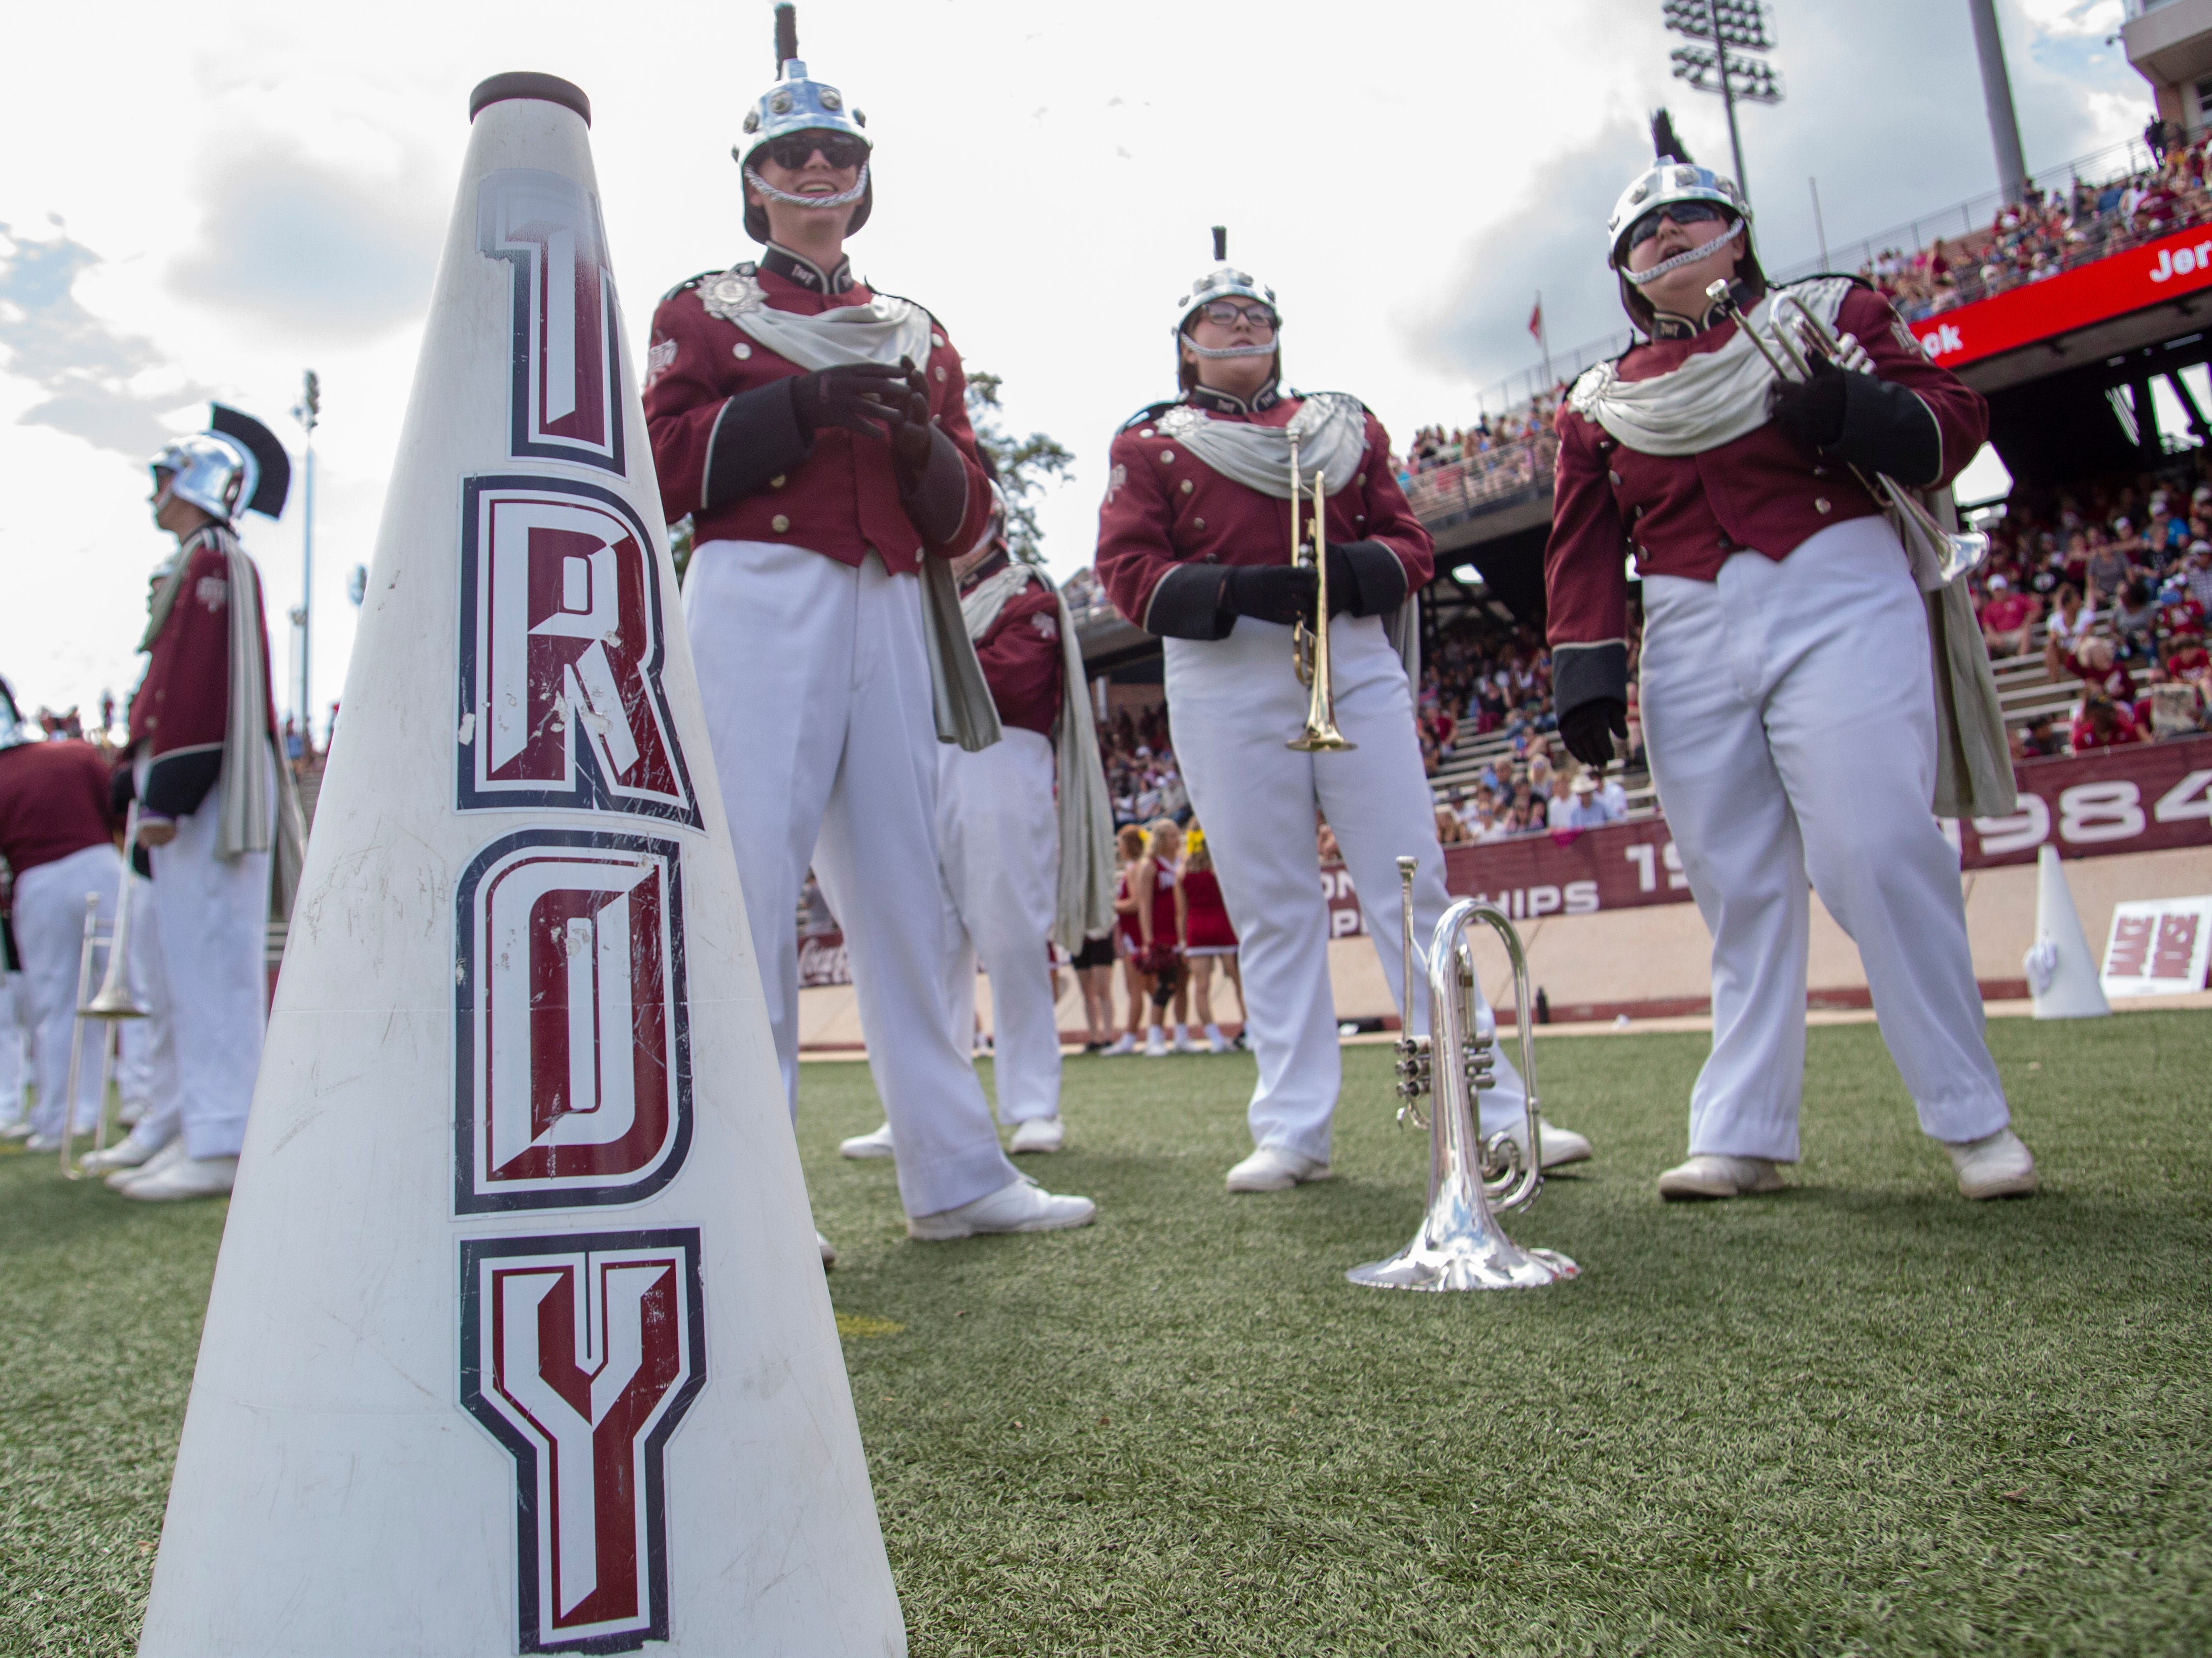 Troy took on Coastal Carolina at home in the fifth round of college football.